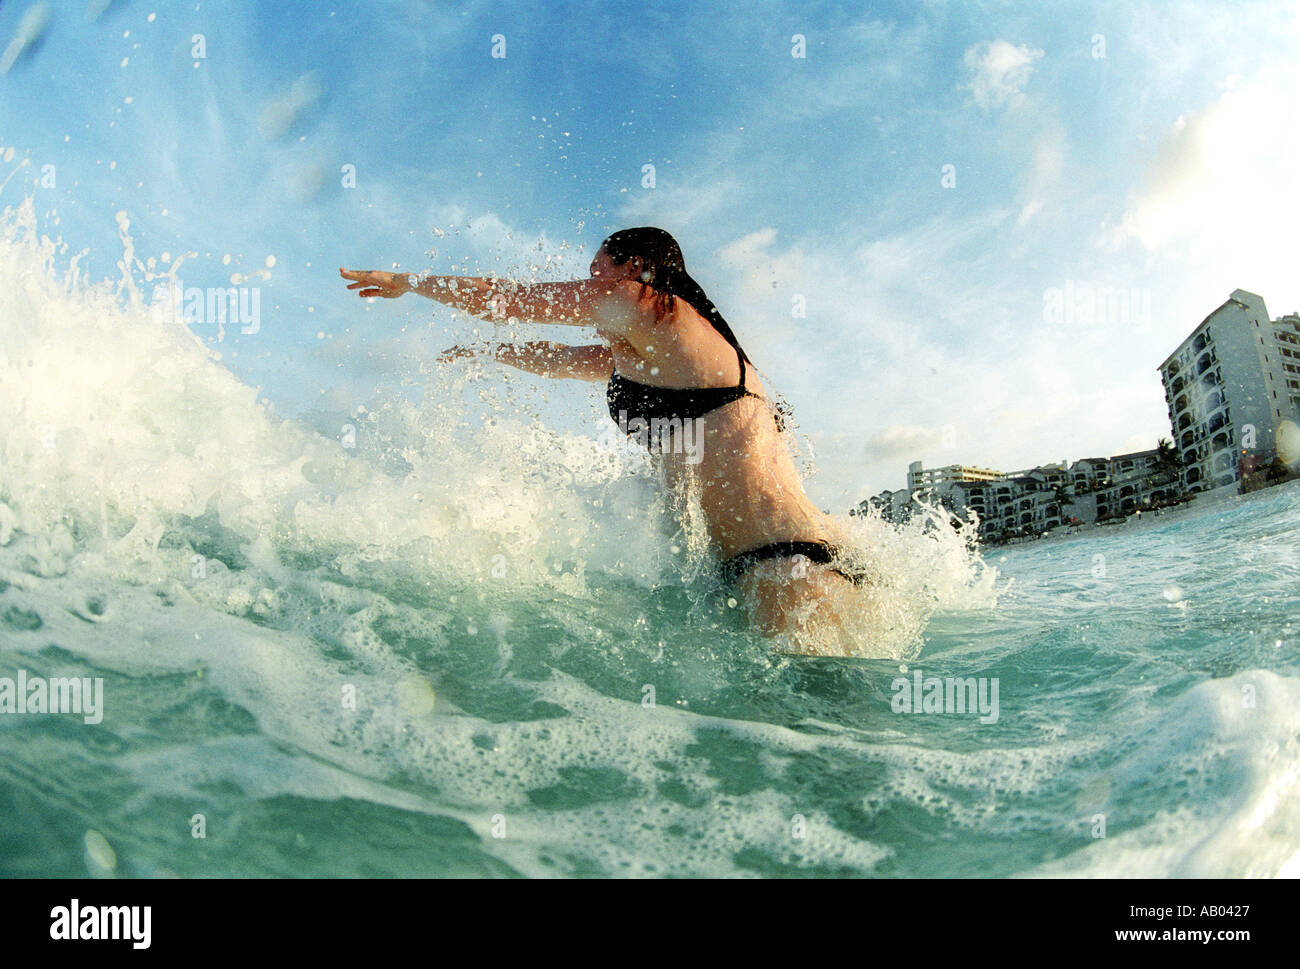 Woman in bikini swimming in waves in Cancun Quintana Roo Mexico Model released image - Stock Image